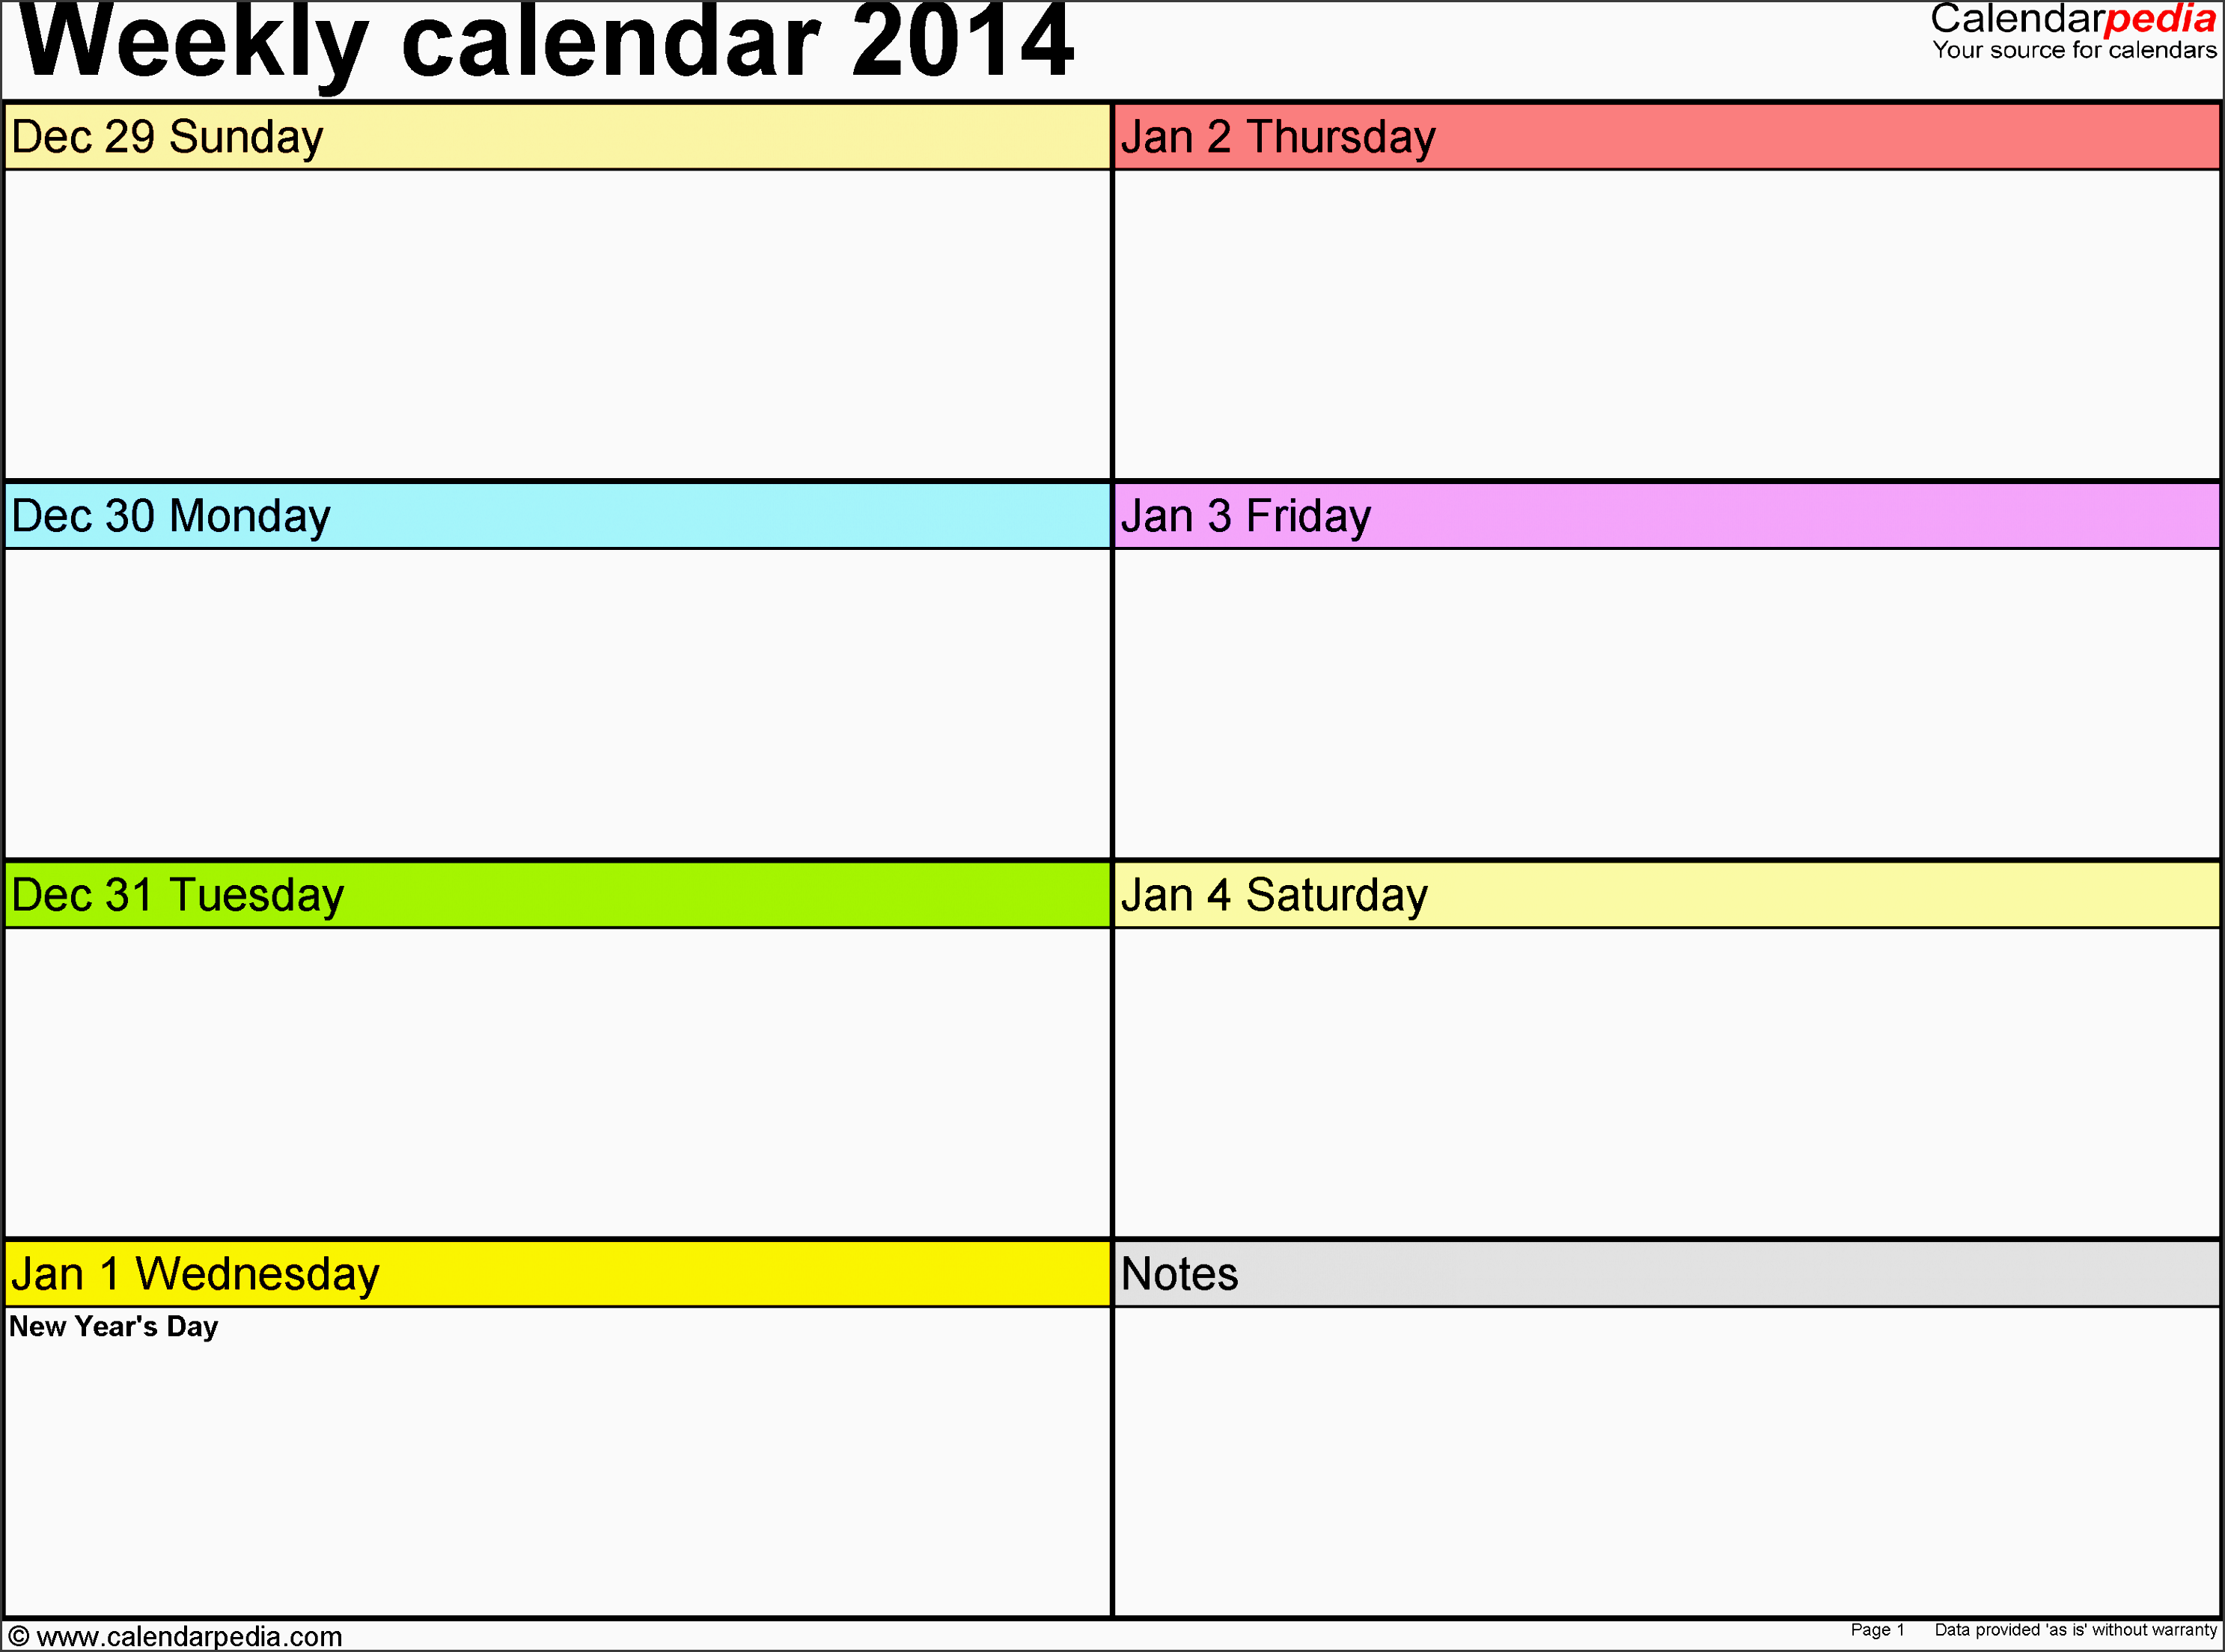 weekly calendar 2014 template for excel version 2 landscape 53 pages in